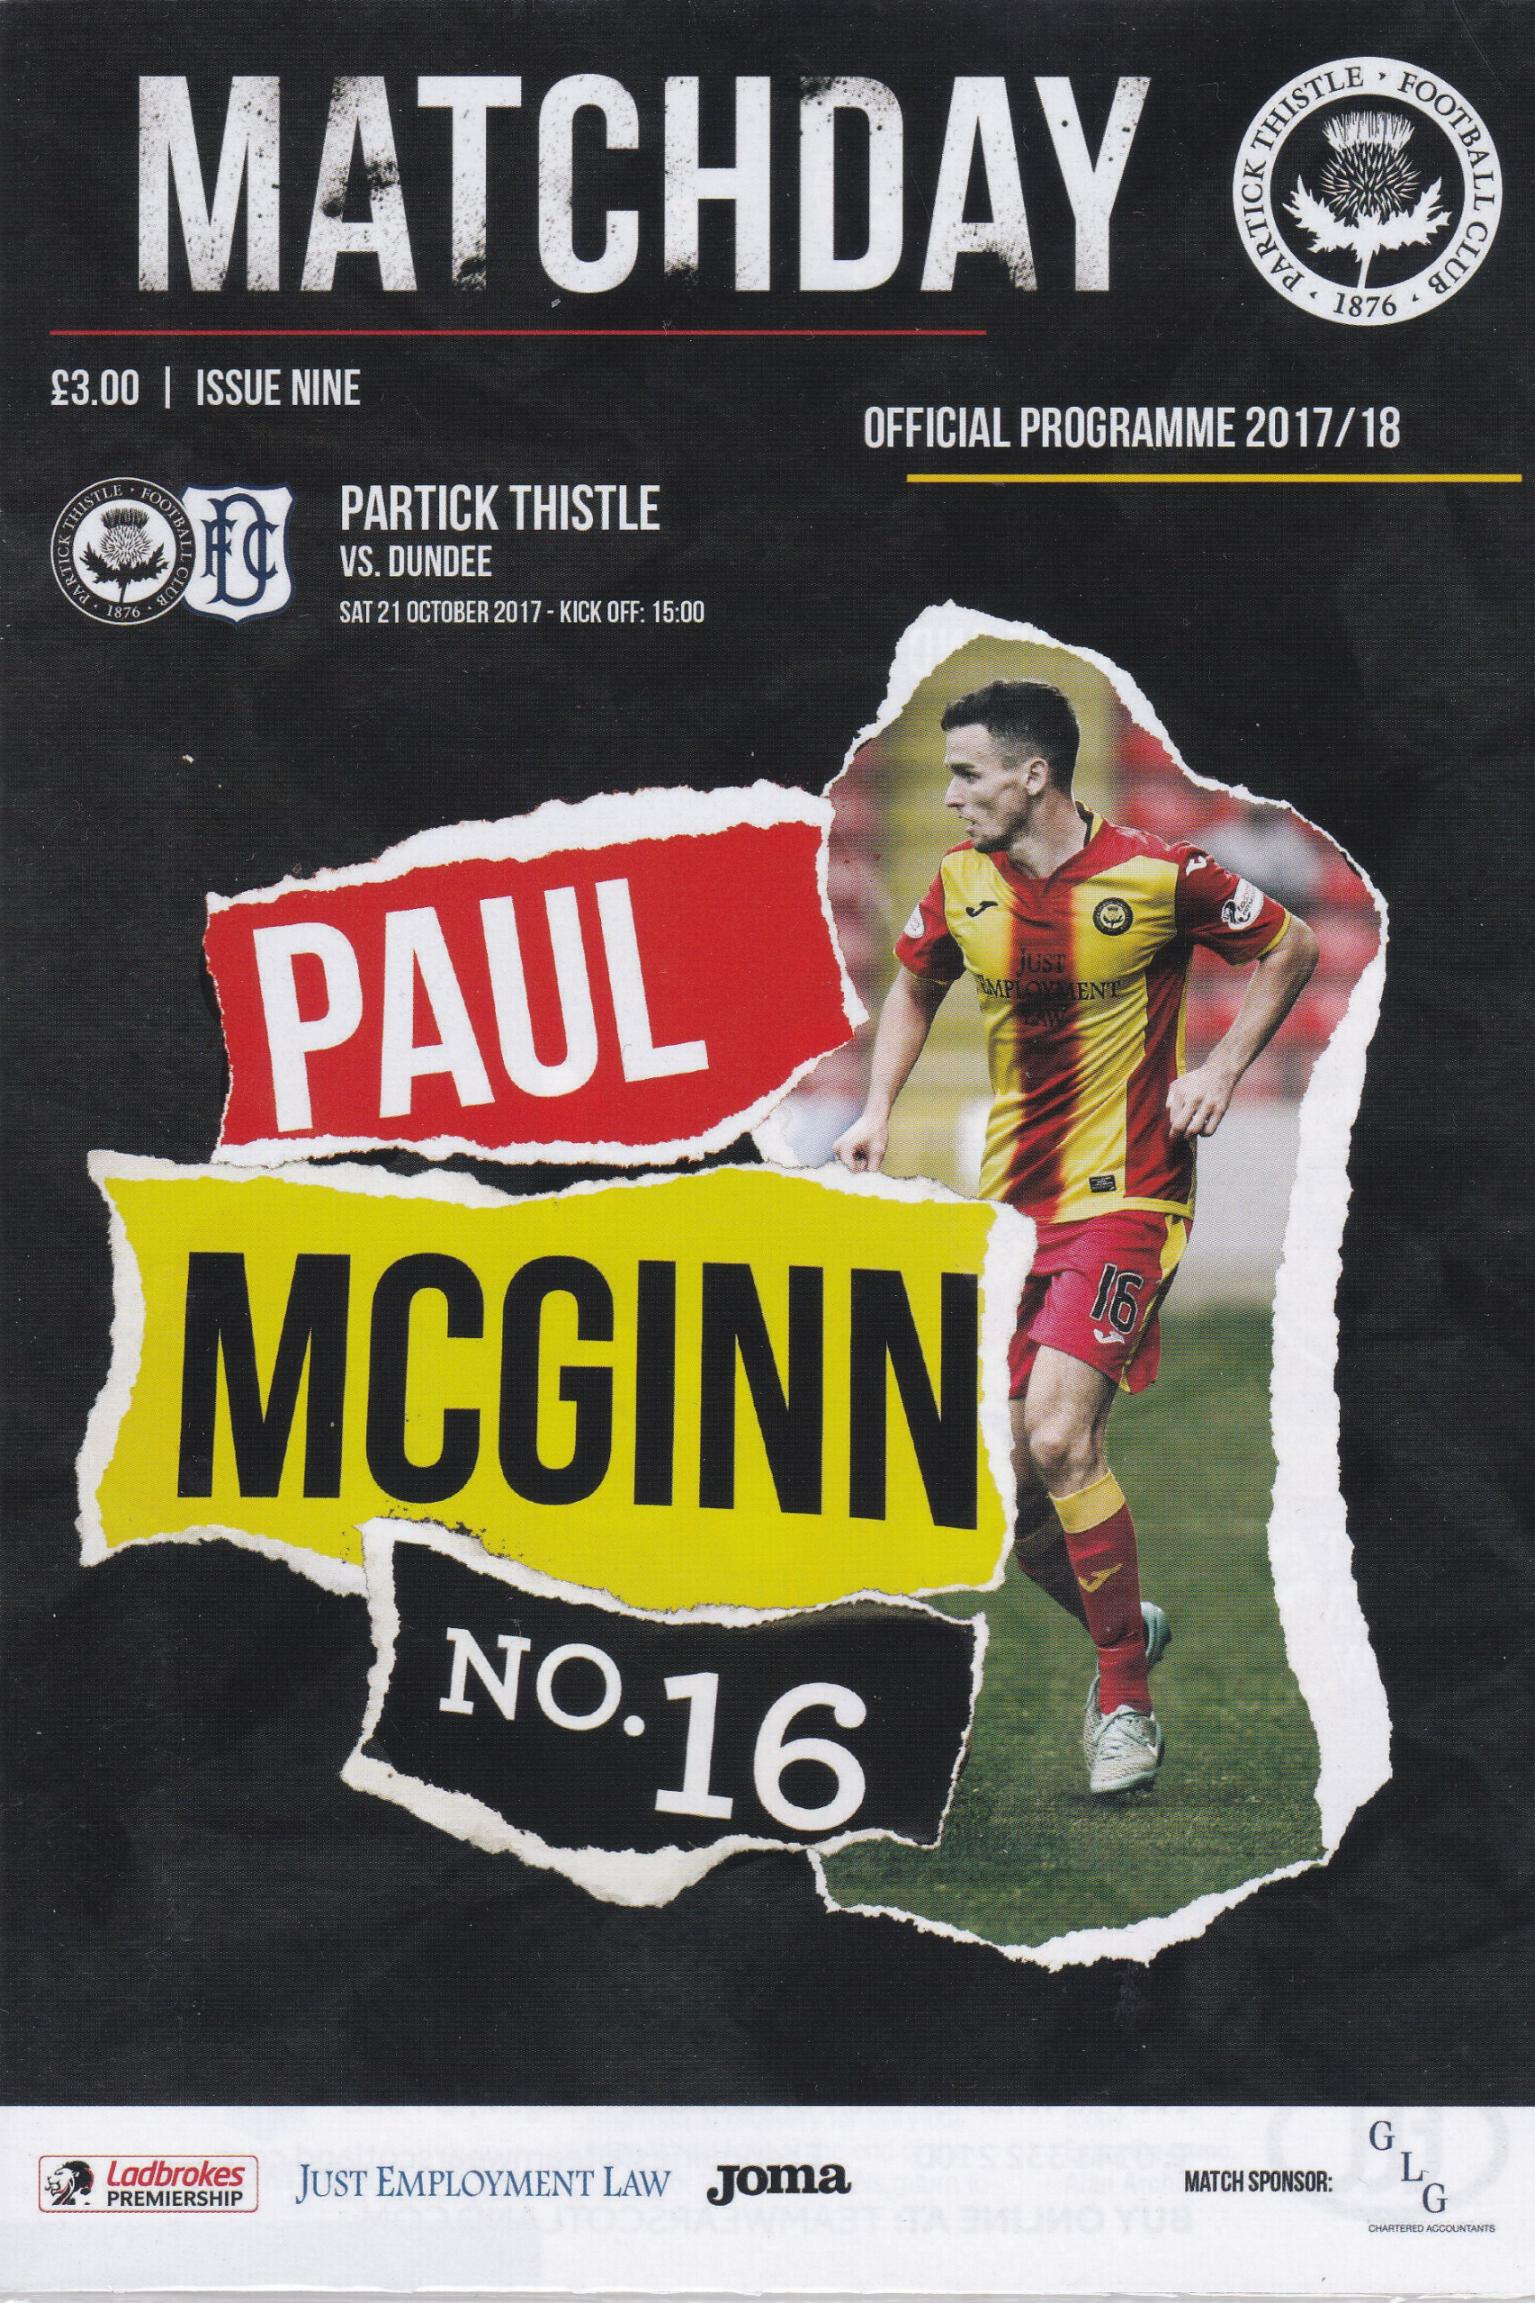 PARTICK THISTLE v DUNDEE 2017/18 (21st October 2017)